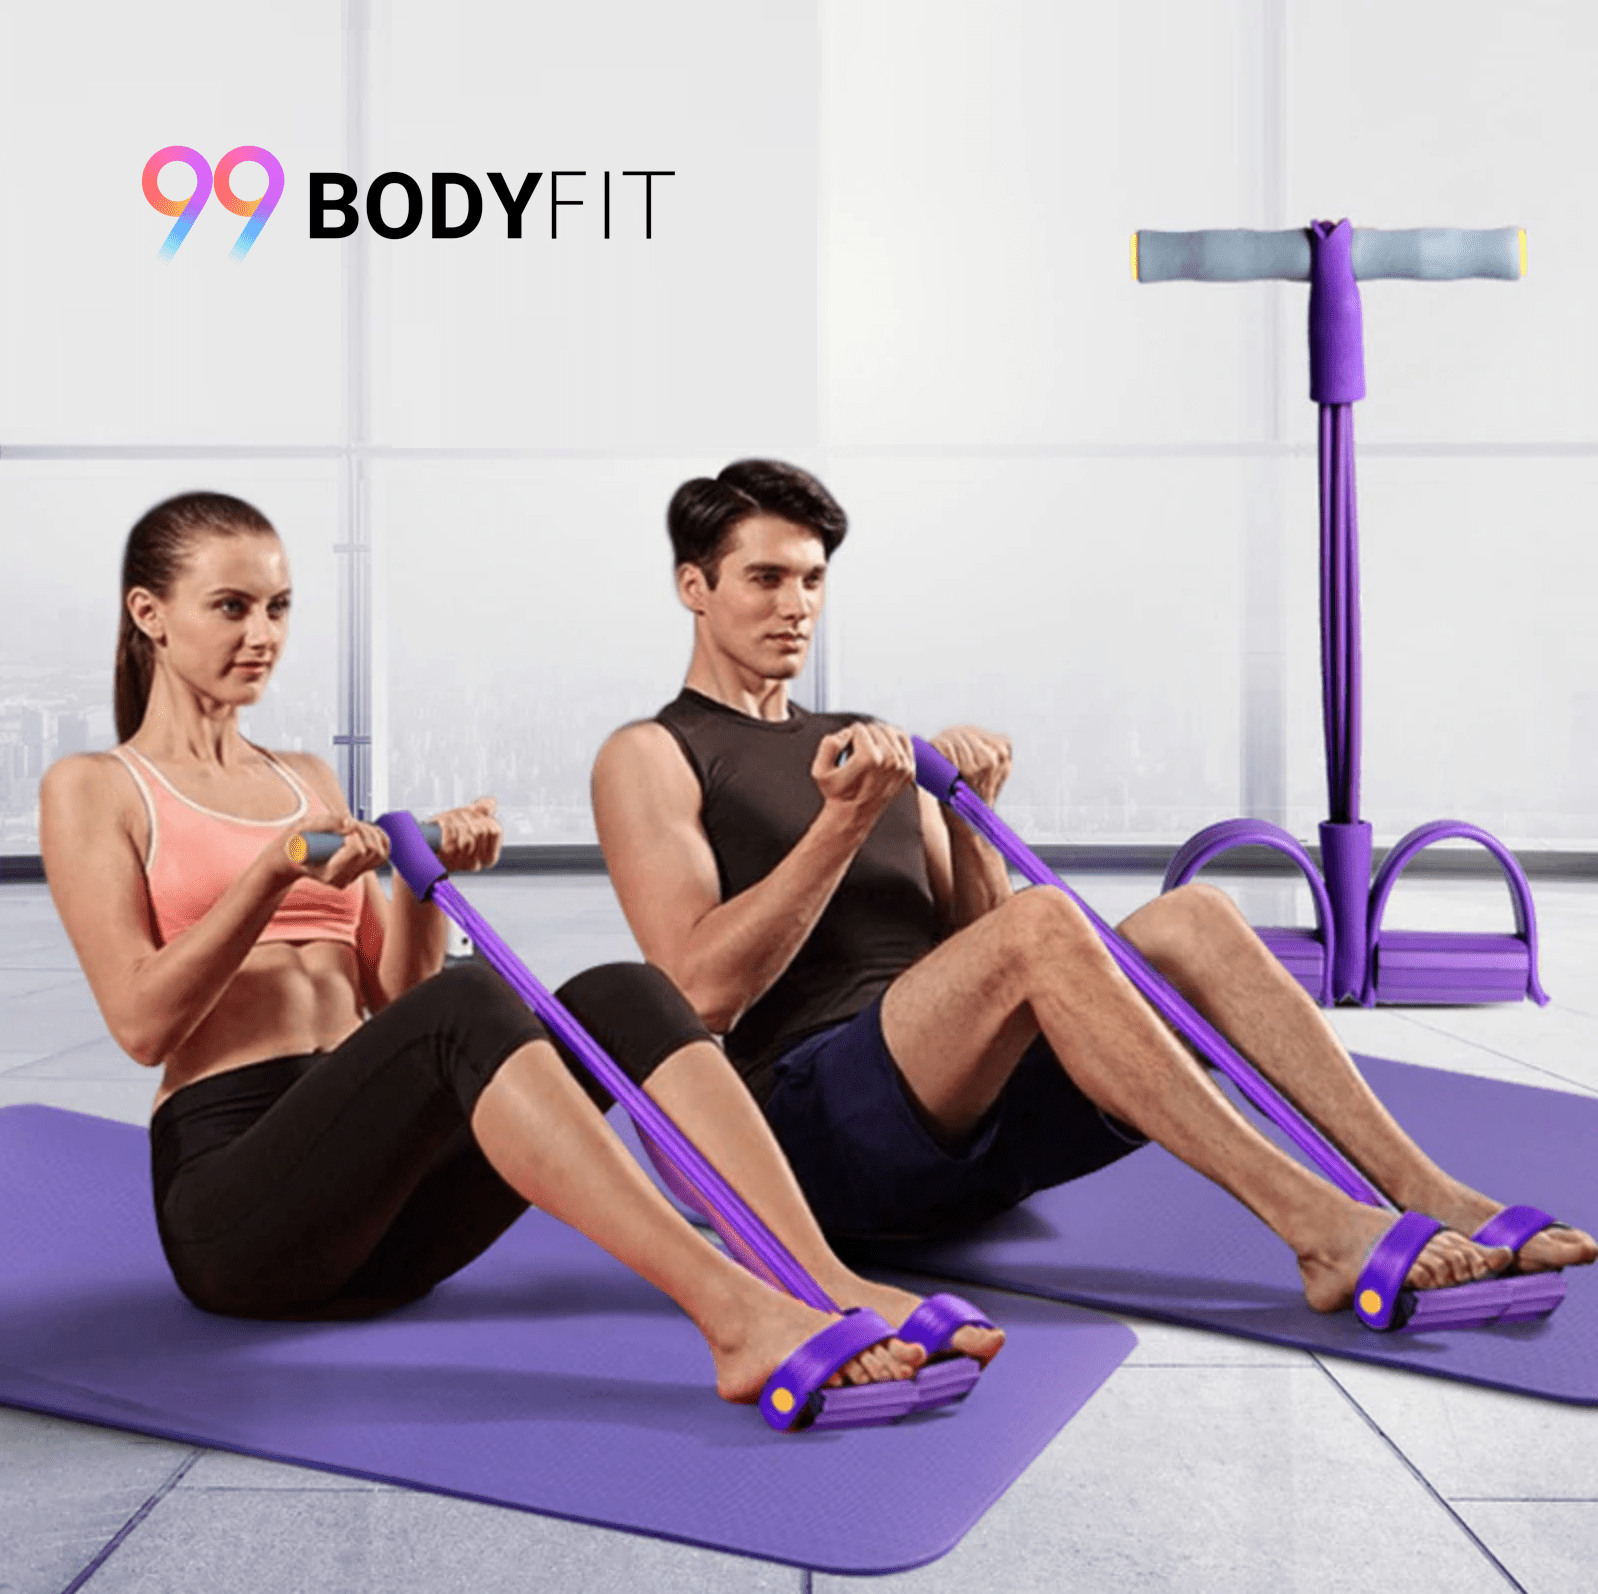 Fitbands Versatile Fitness Tension Rope 99bodyfit International In 2020 Band Workout No Equipment Workout Gym Workouts